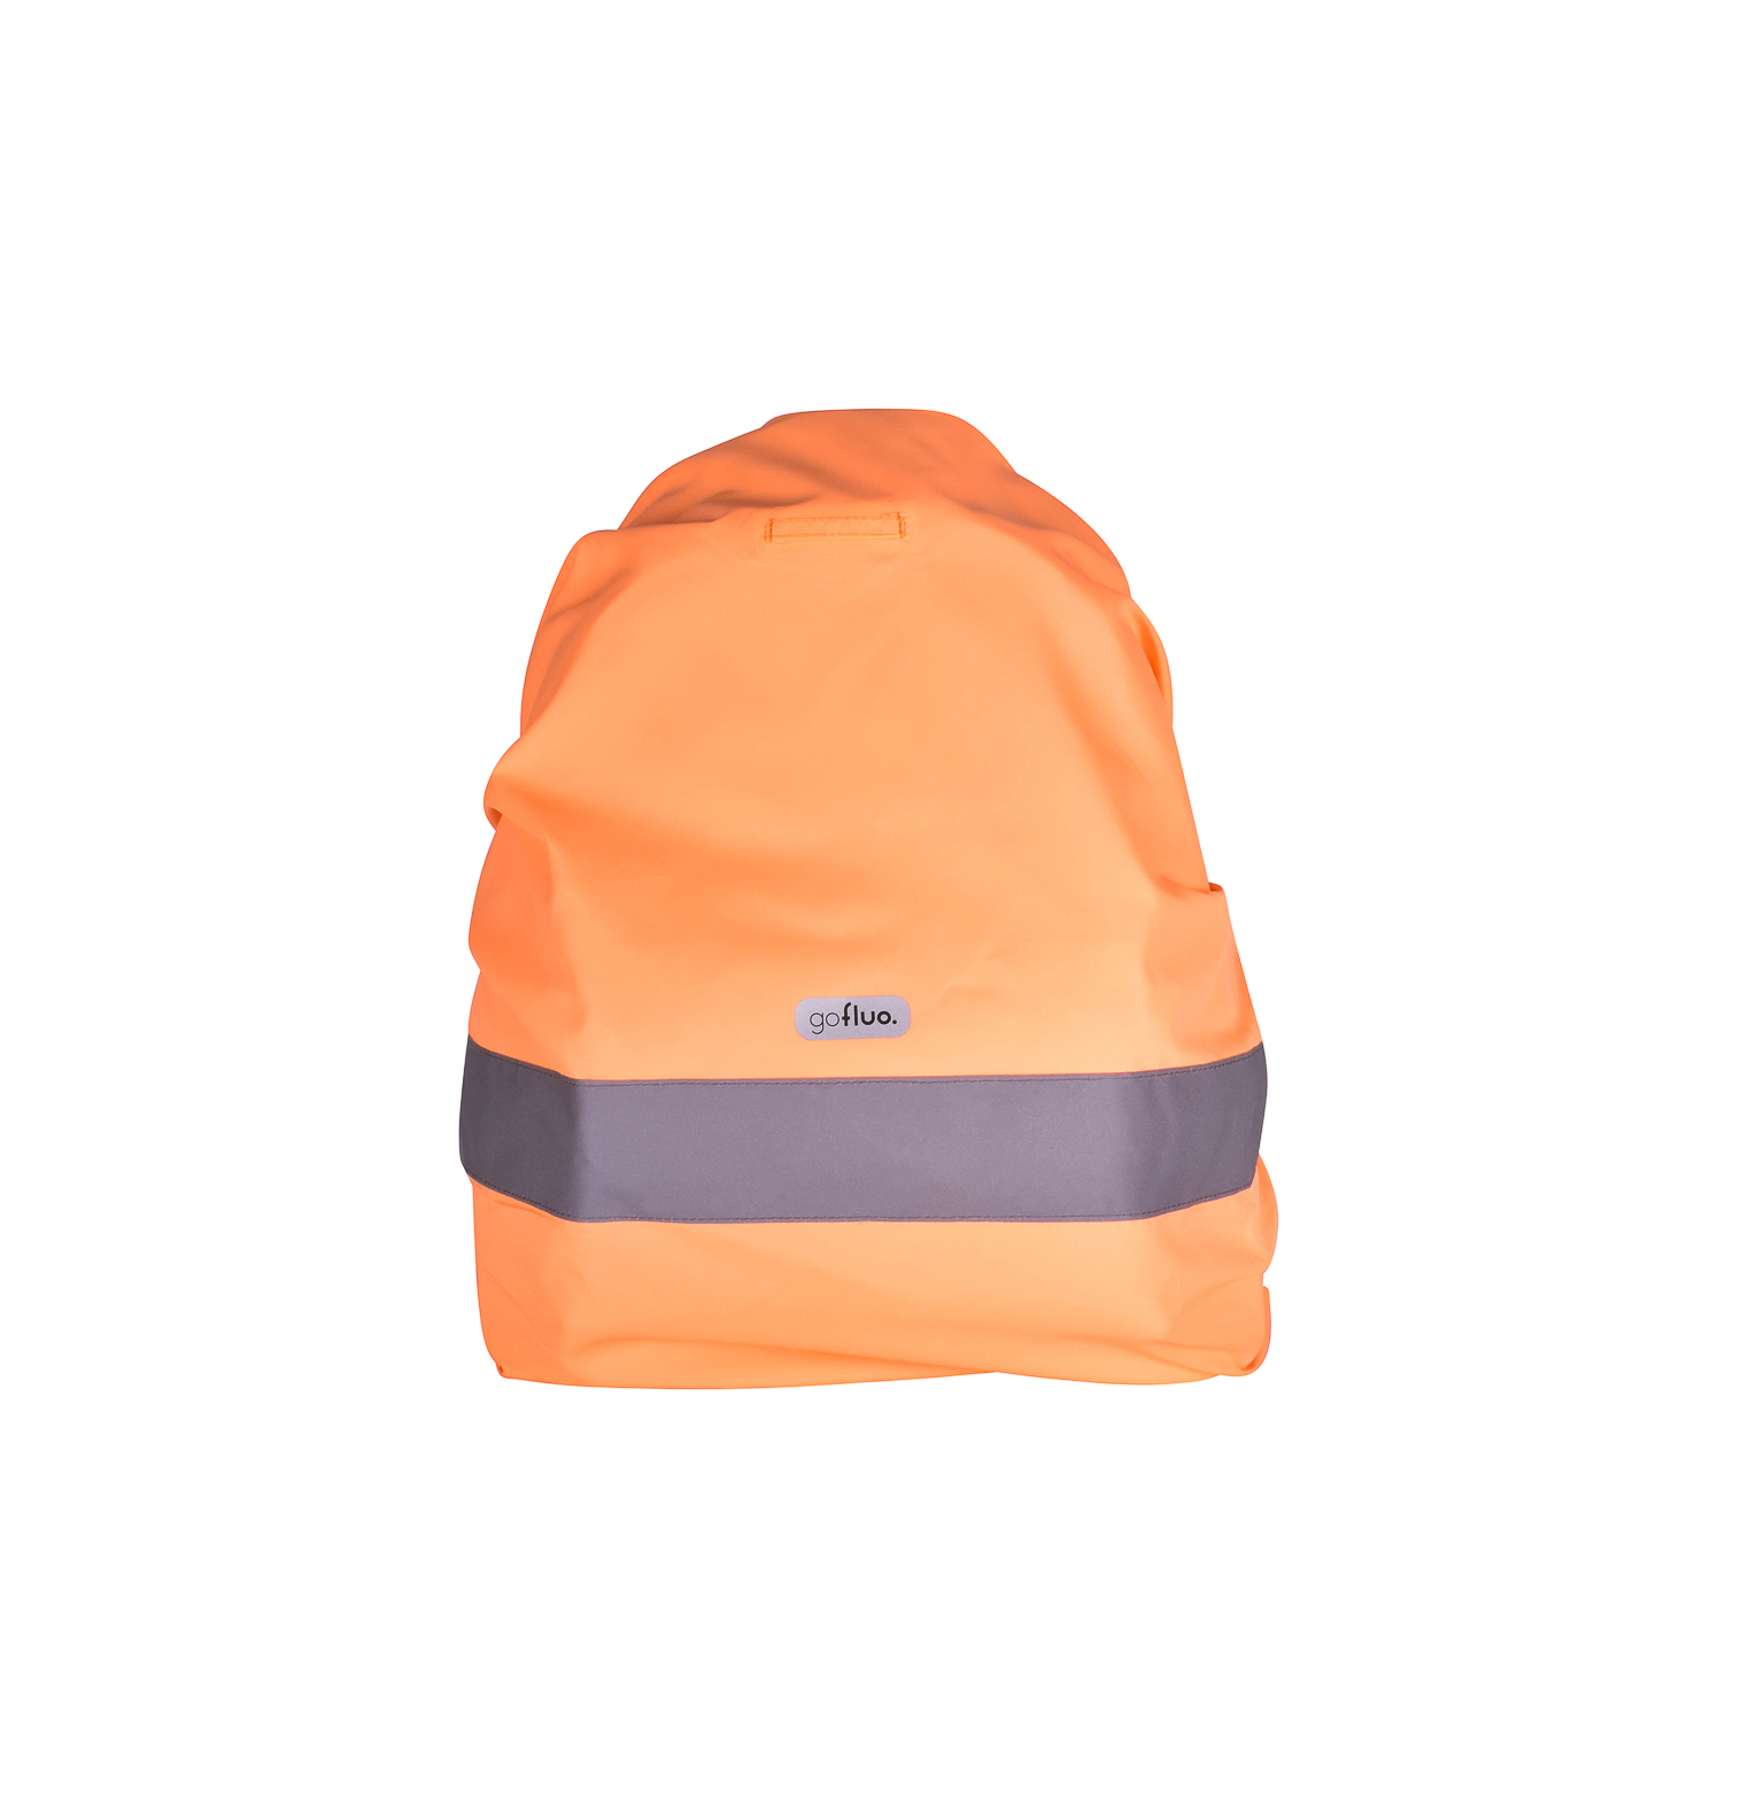 Rugzakhoes Finn peach one size